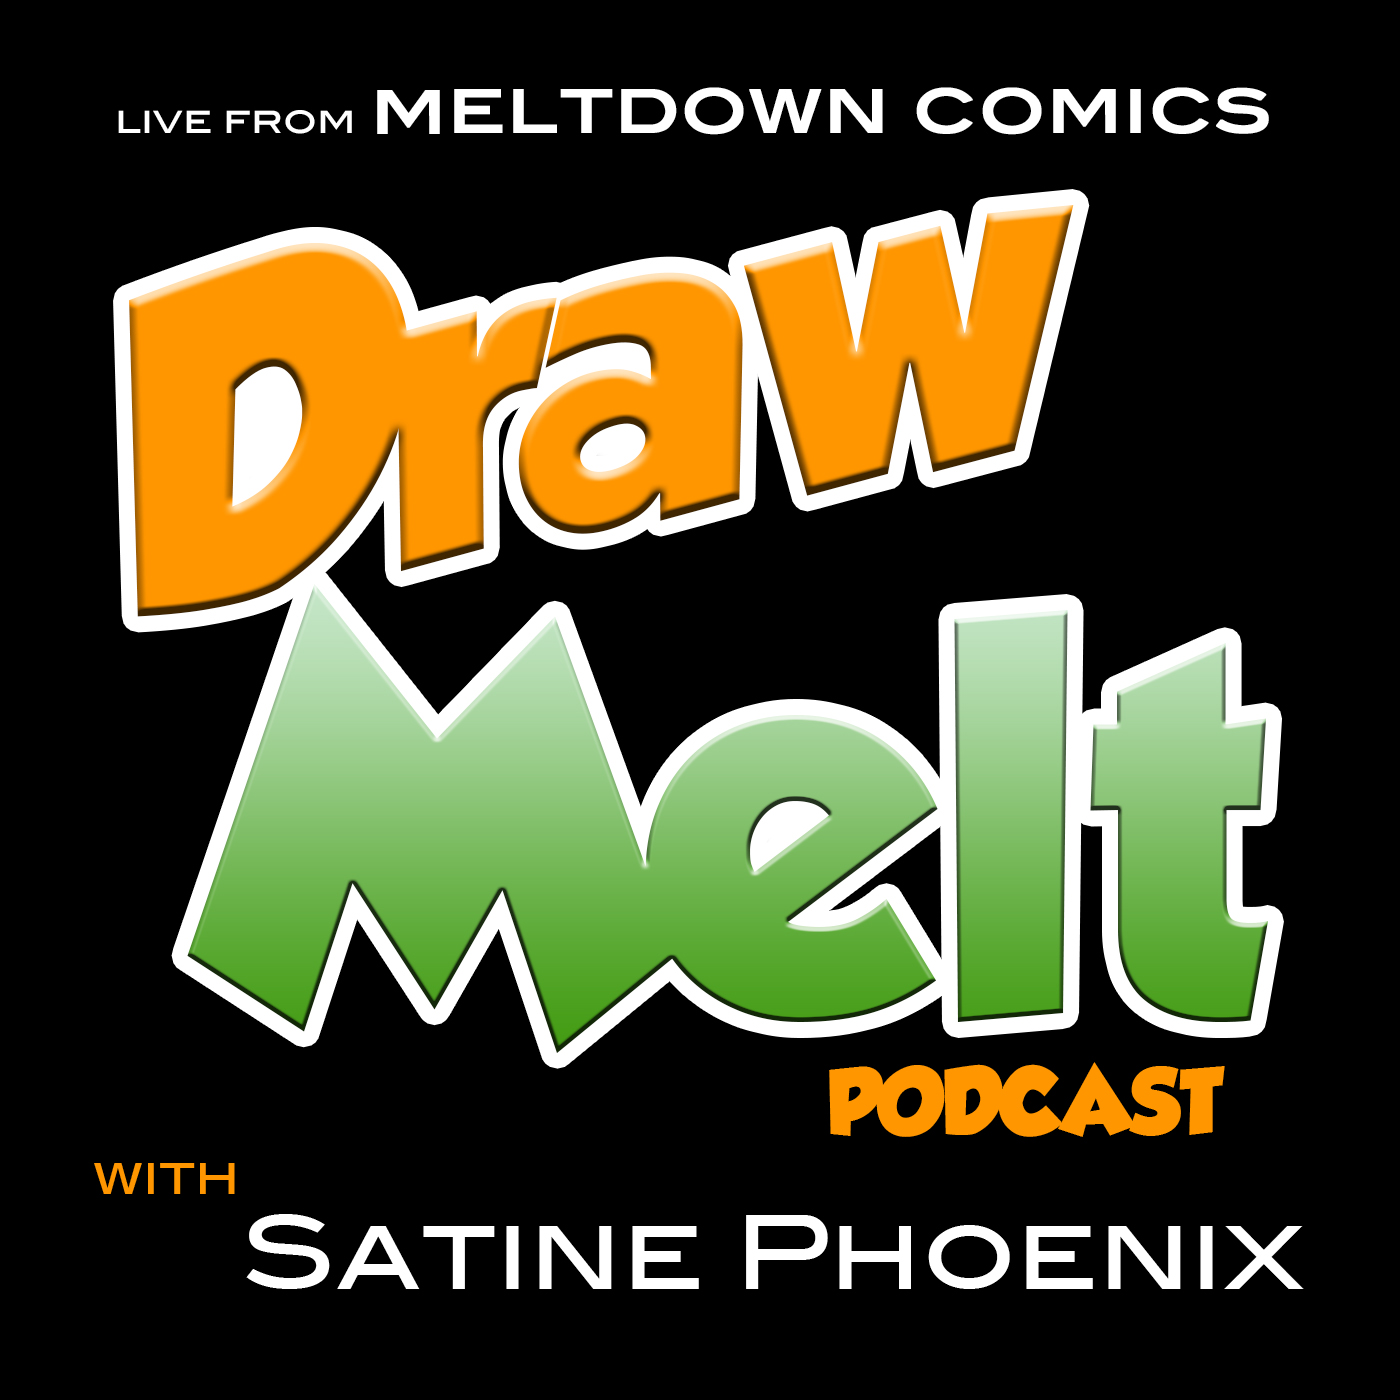 DrawMelt Podcast